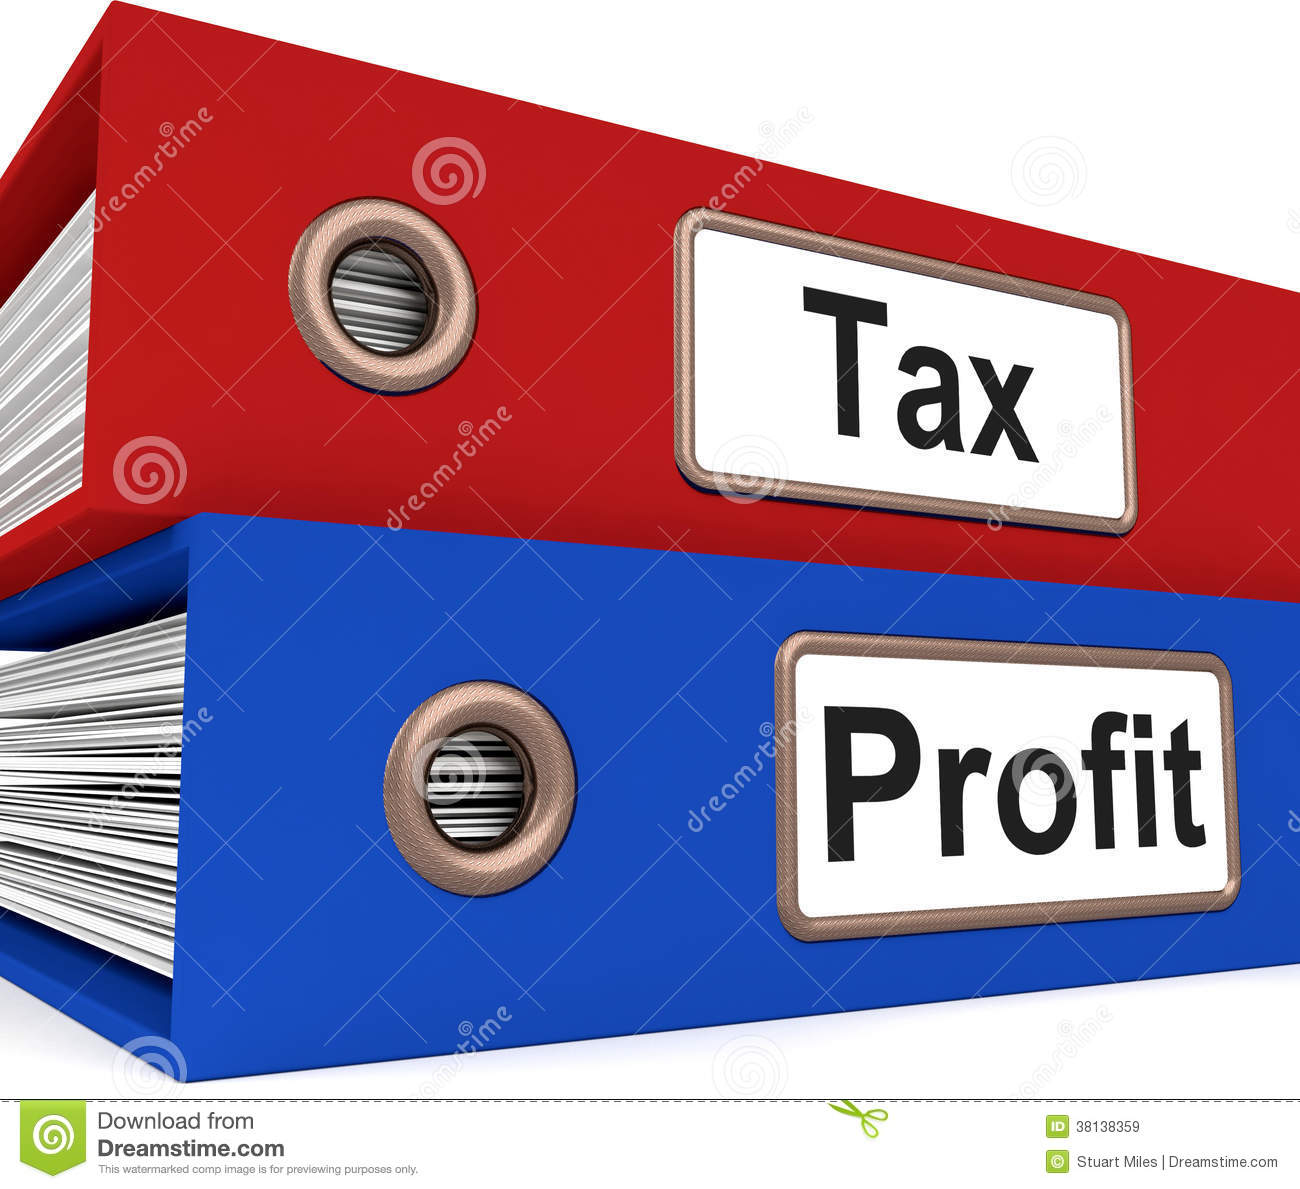 tax profit The net amount earned by a business after all taxation related expenses have been deducted the profit after tax is often a better assessment of what a business is really earning and hence can use in its operations than its total revenues.